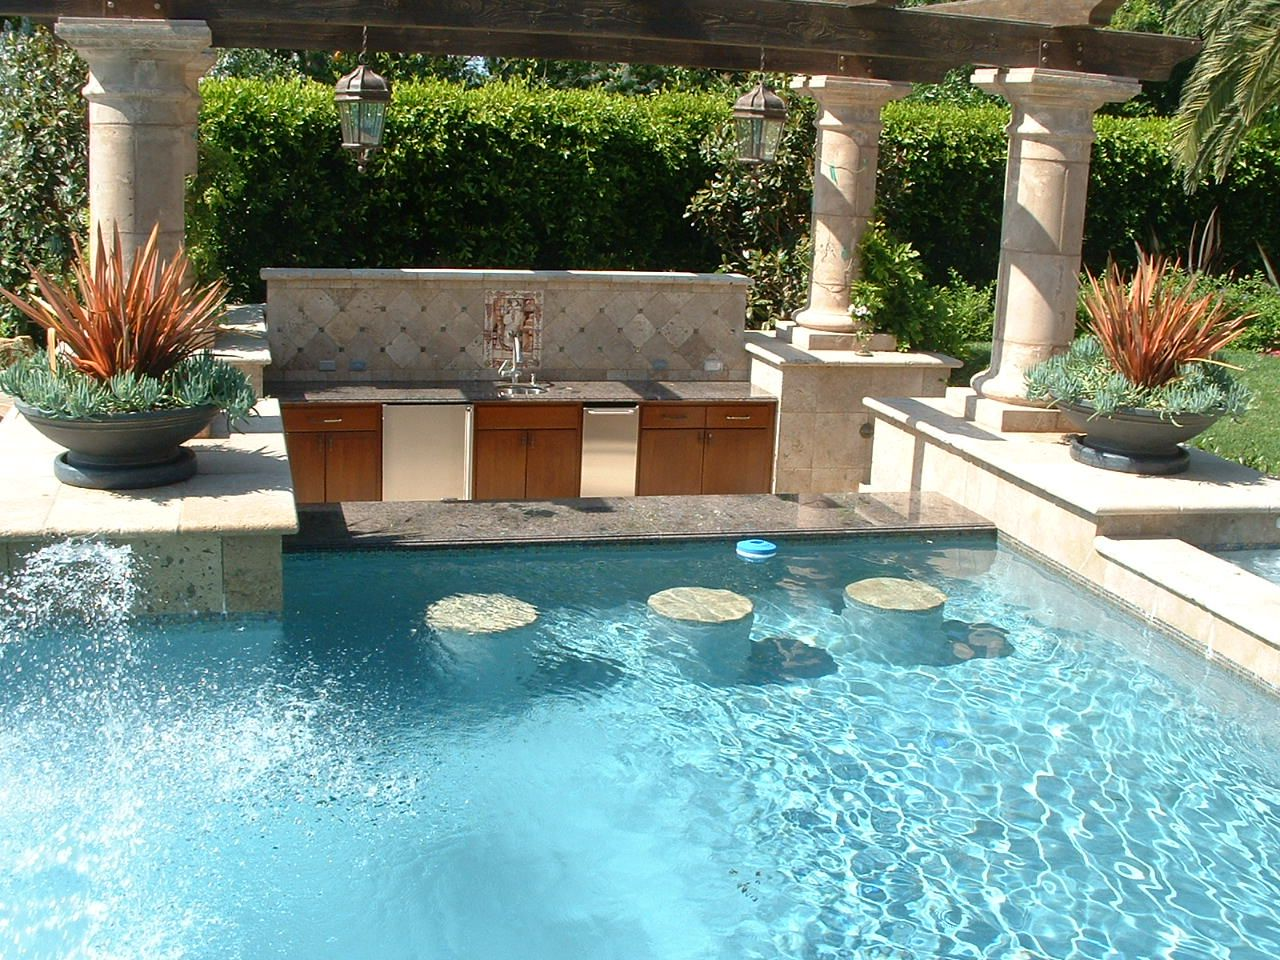 Pools and Spas in Carlsbad, CA - San Diego Dream Pools and ... on Dream Backyard With Pool id=71868